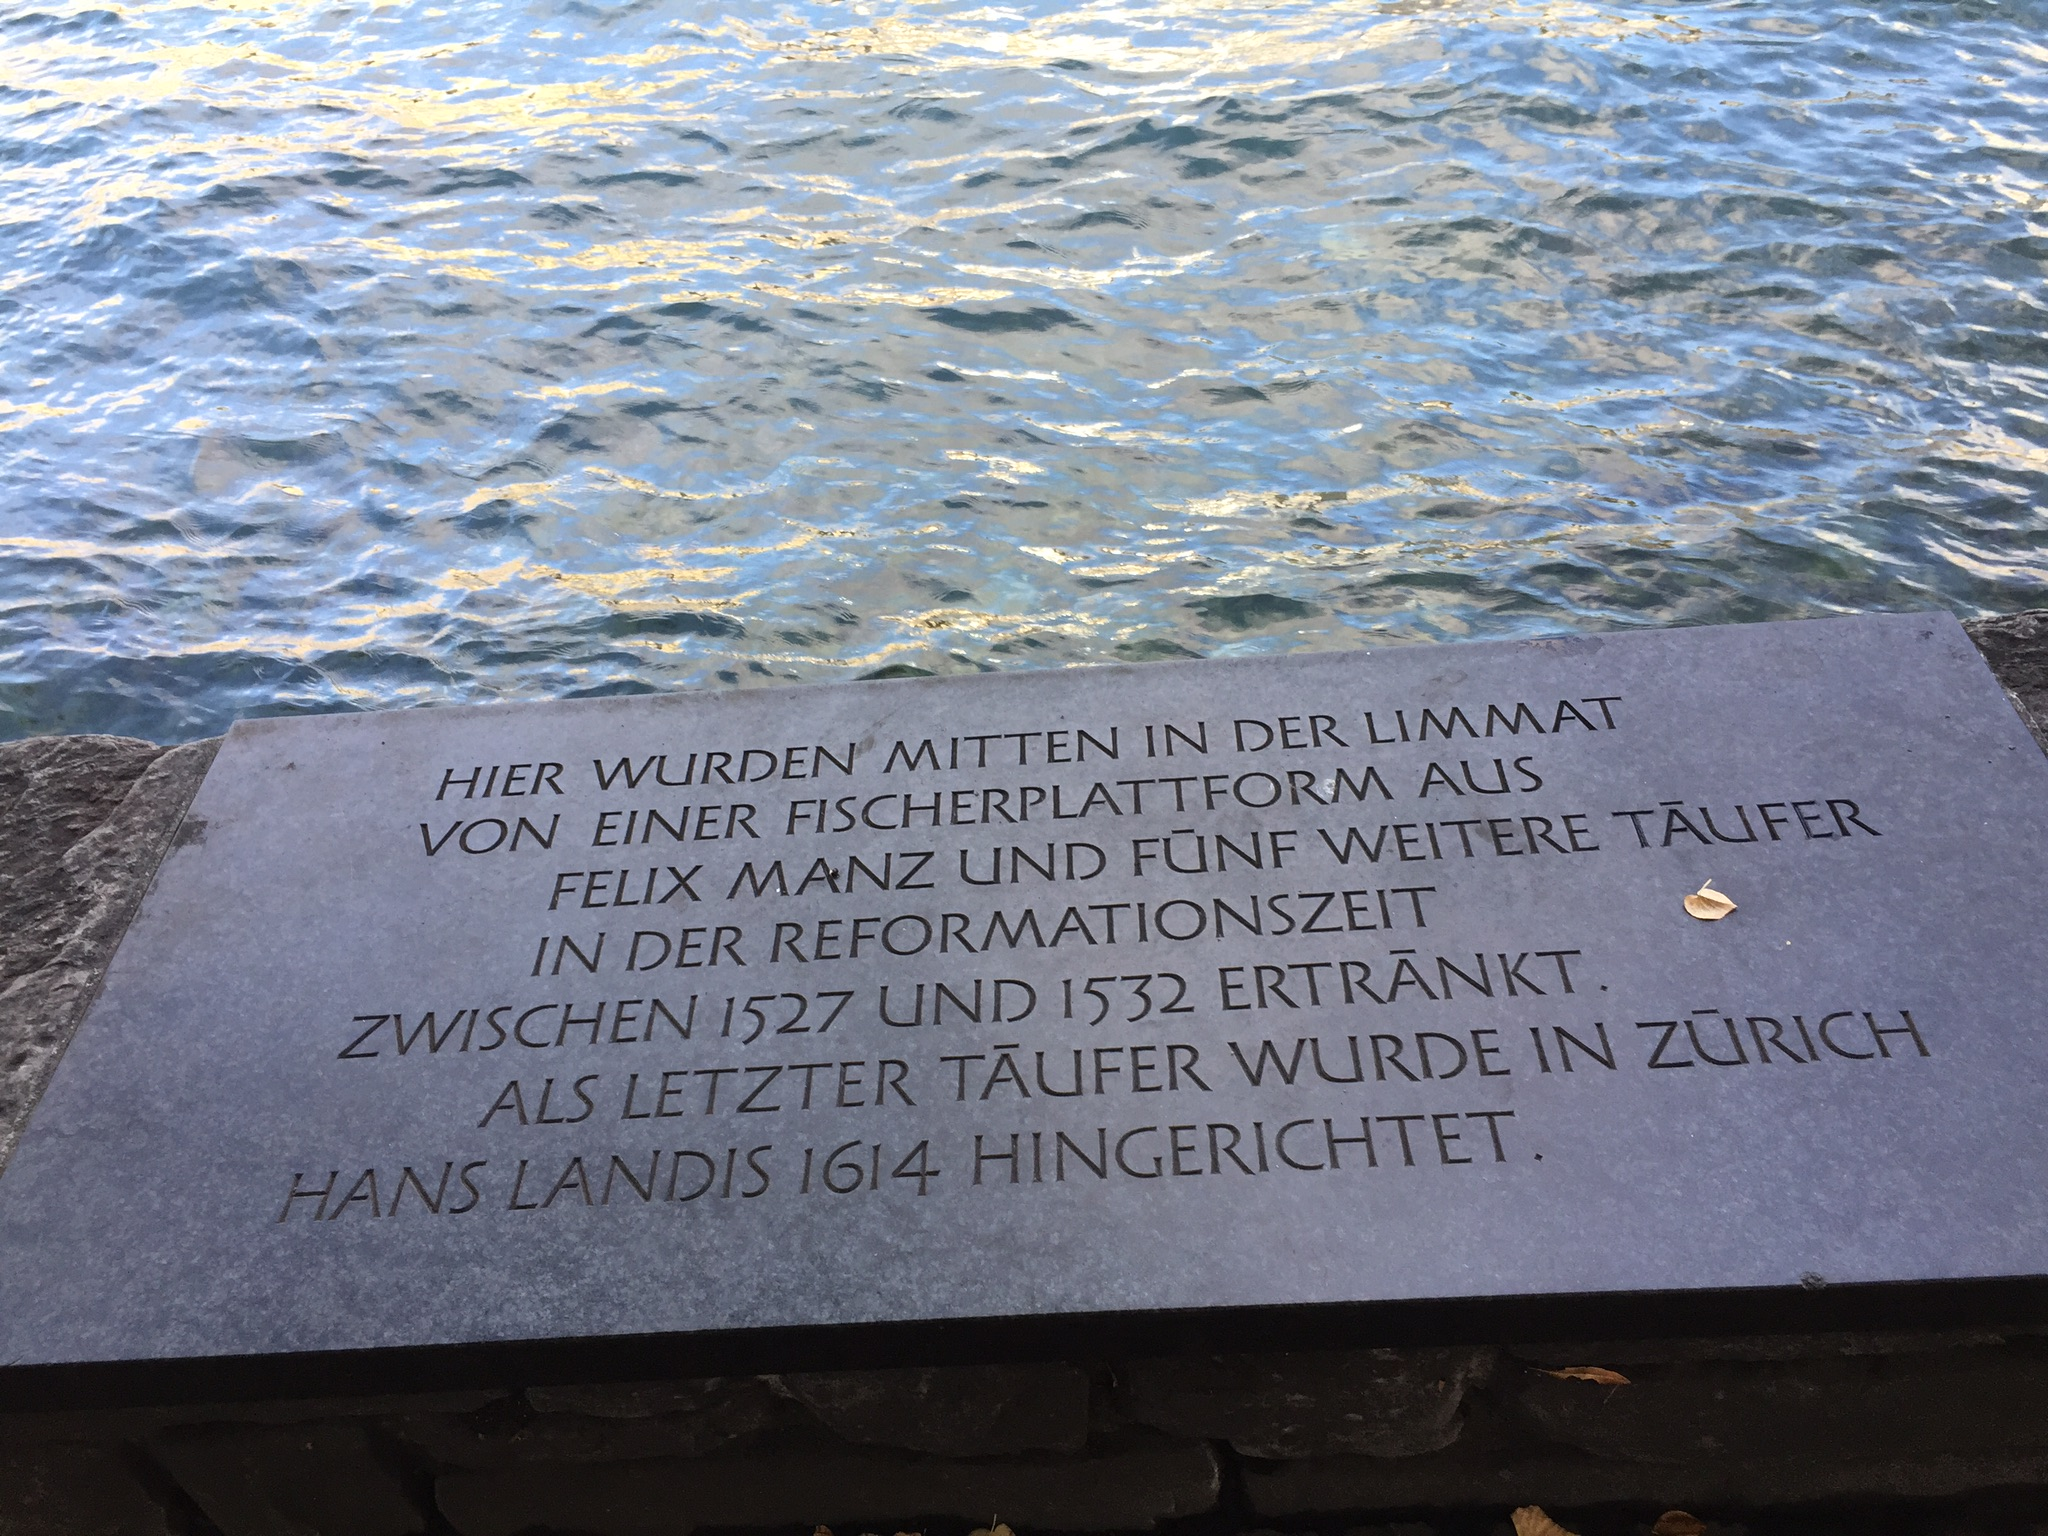 At the edge of the Limmet, in the middle of downtown Zürich, this plaque denoting the place Manz met his watery end is unadorned and hard to find. I will never forget - nor fail to be haunted and humbled - by it.